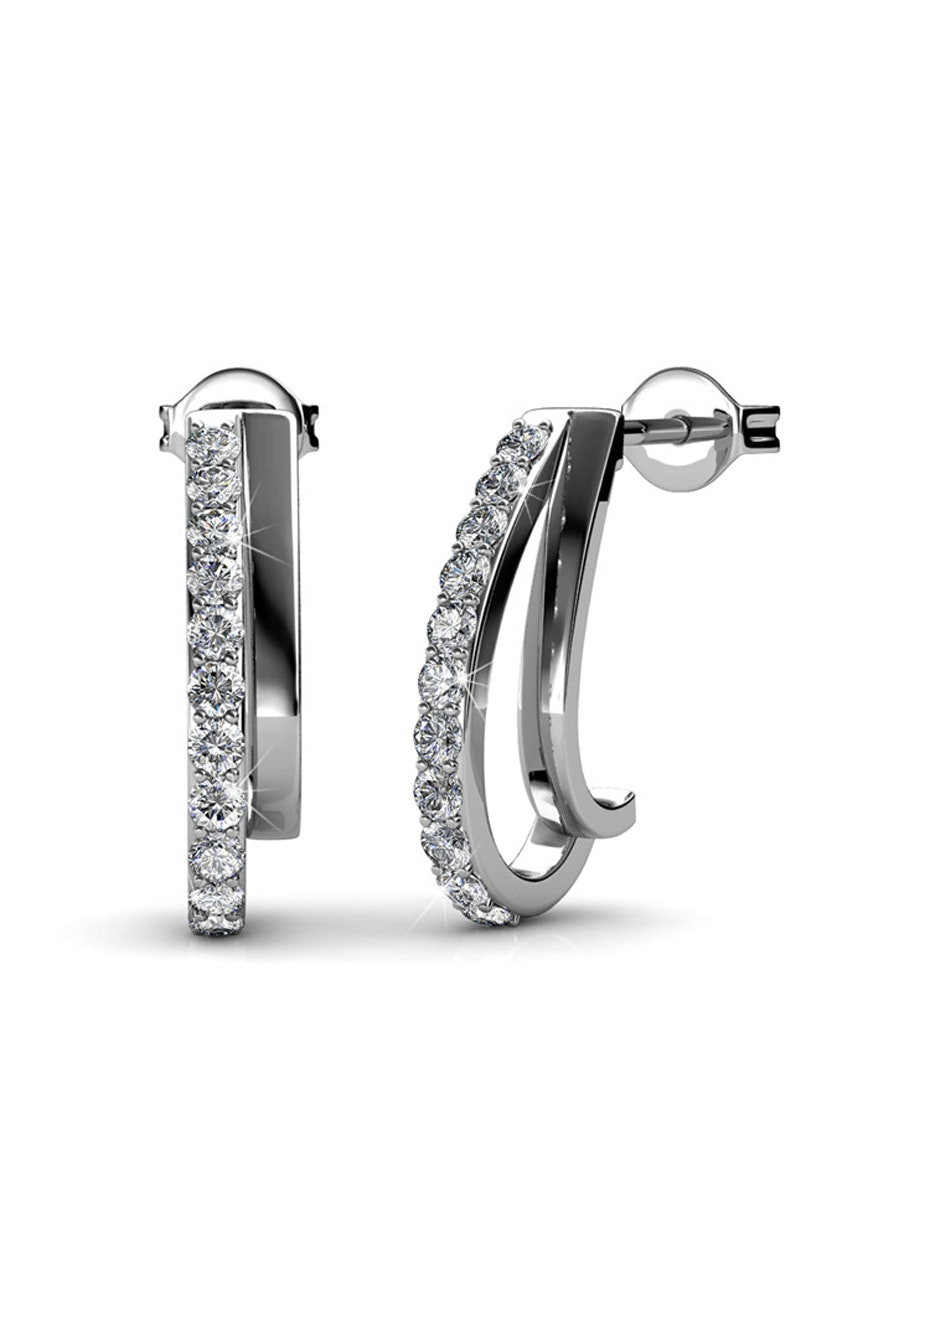 Evolve White Gold Earrings Embellished with Crystals from Swarovski